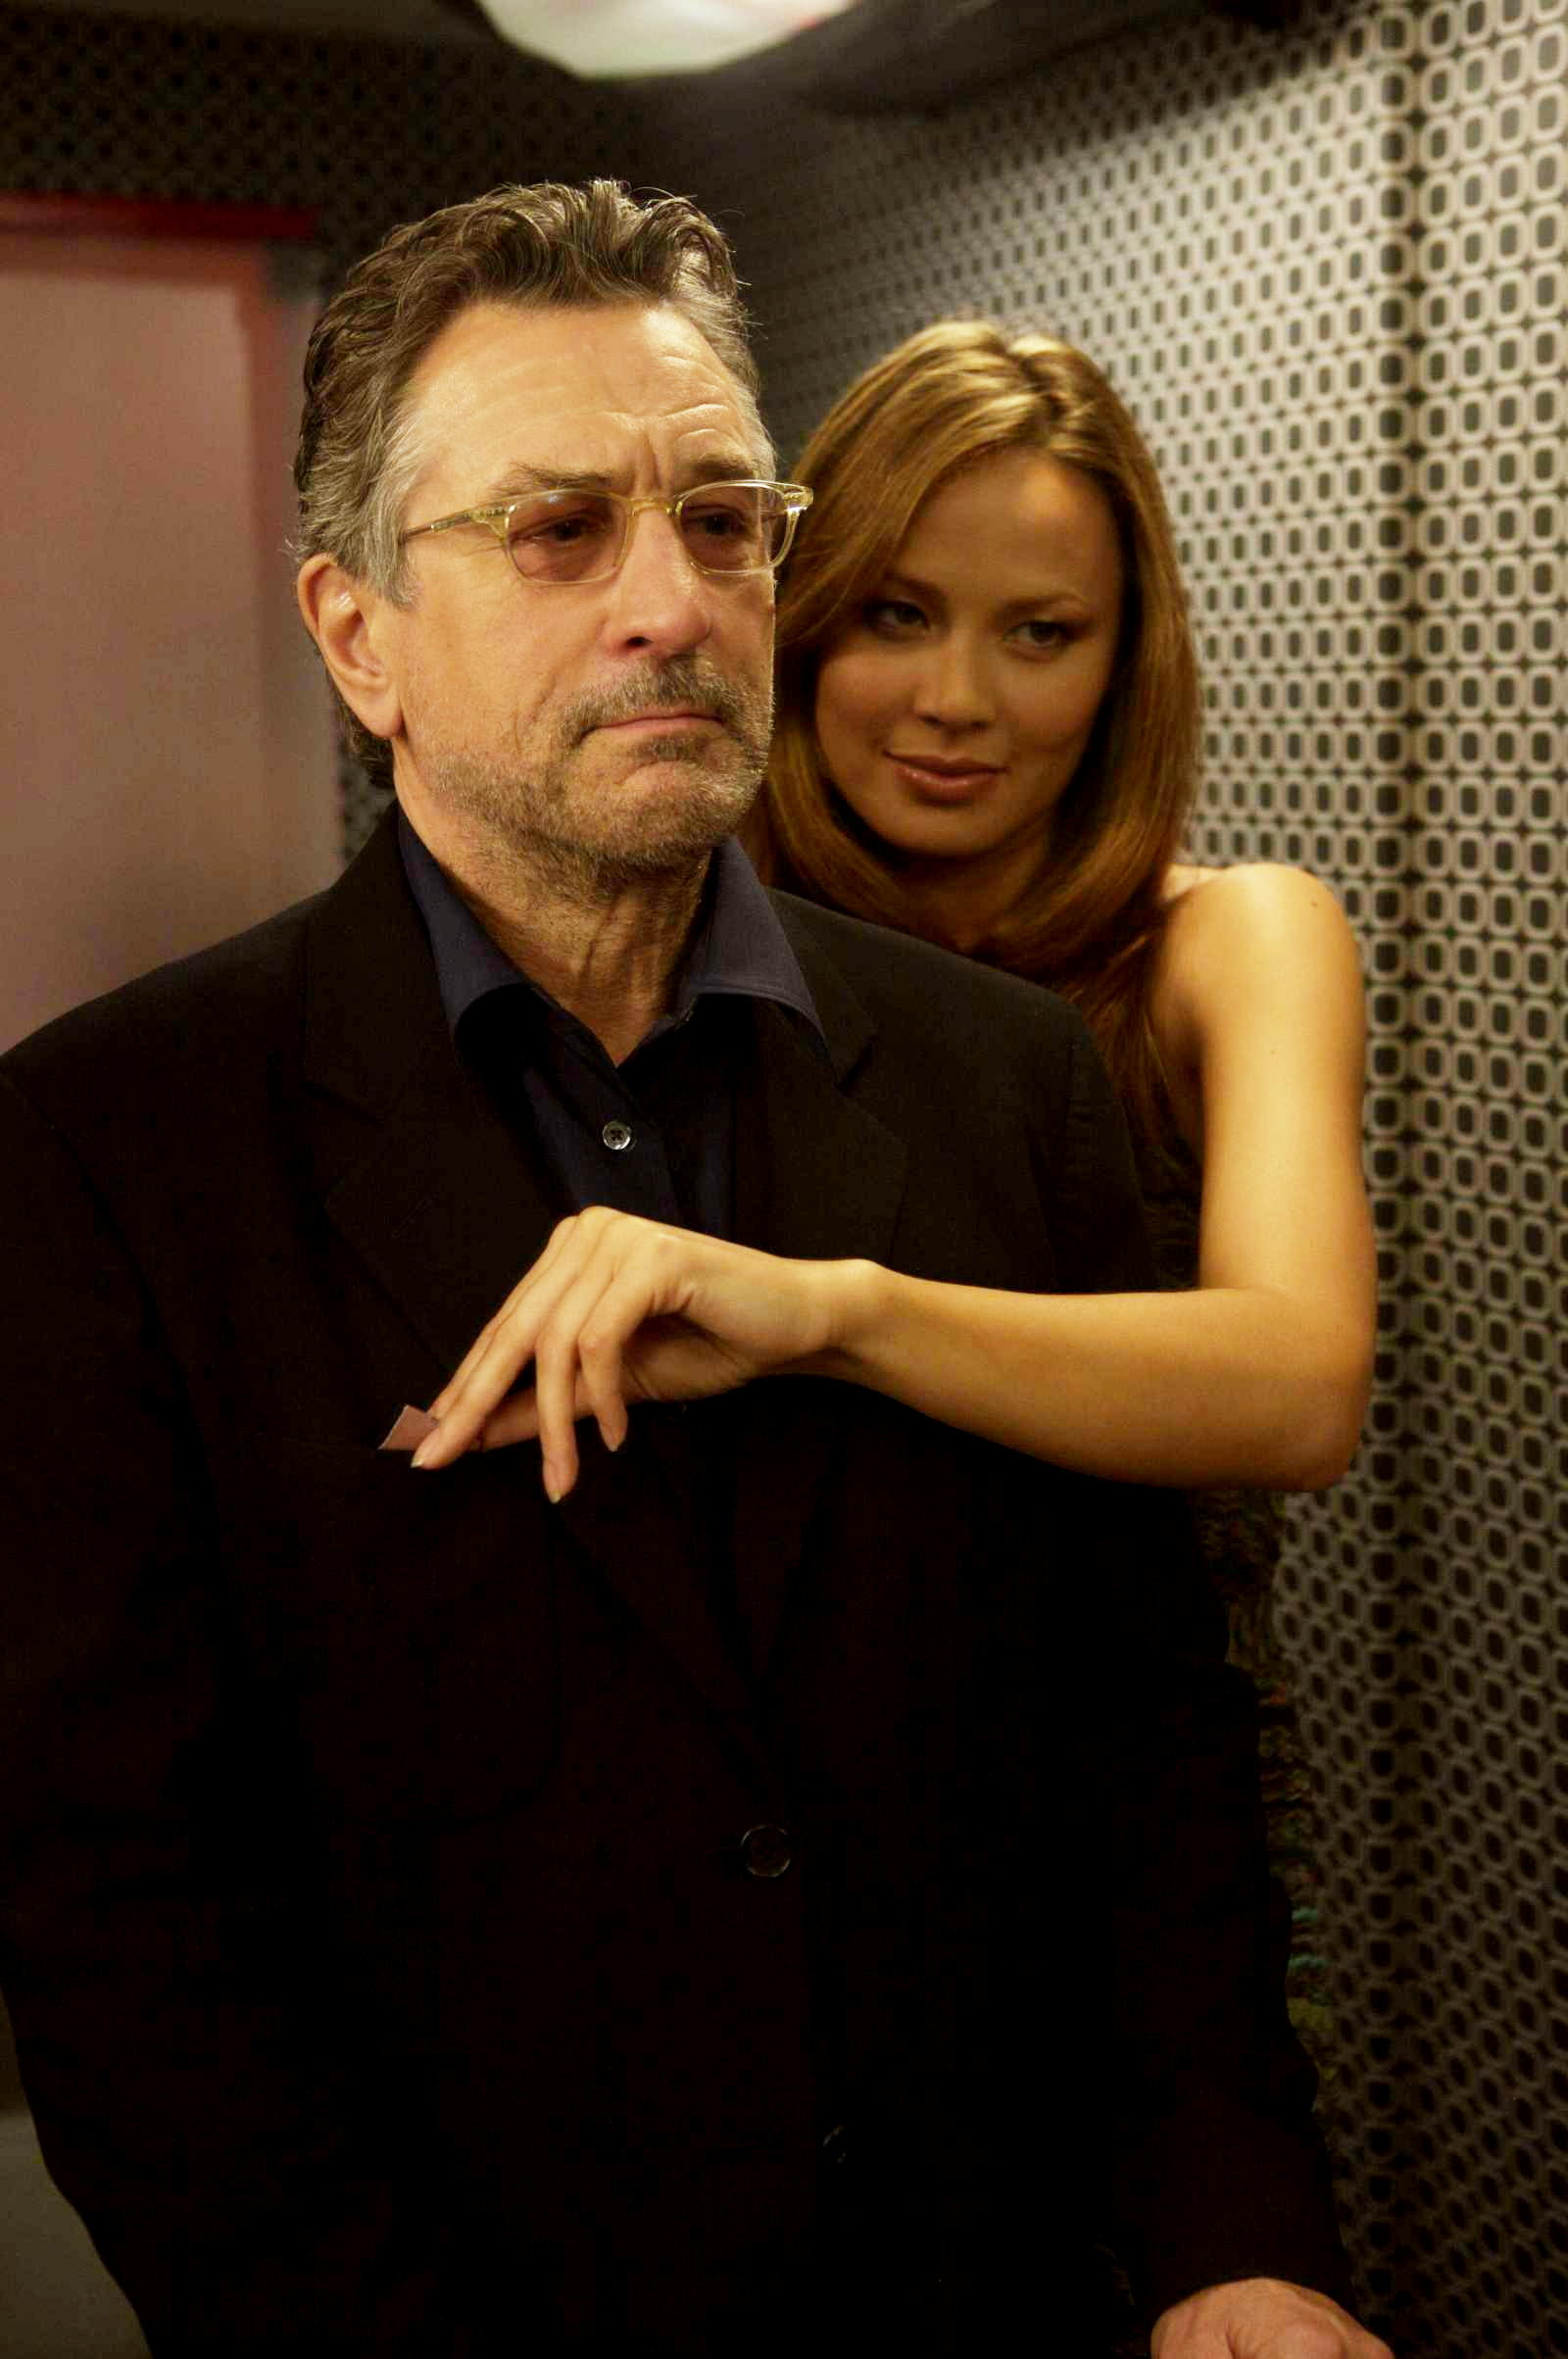 De Niro and Woman in What Just Happened?